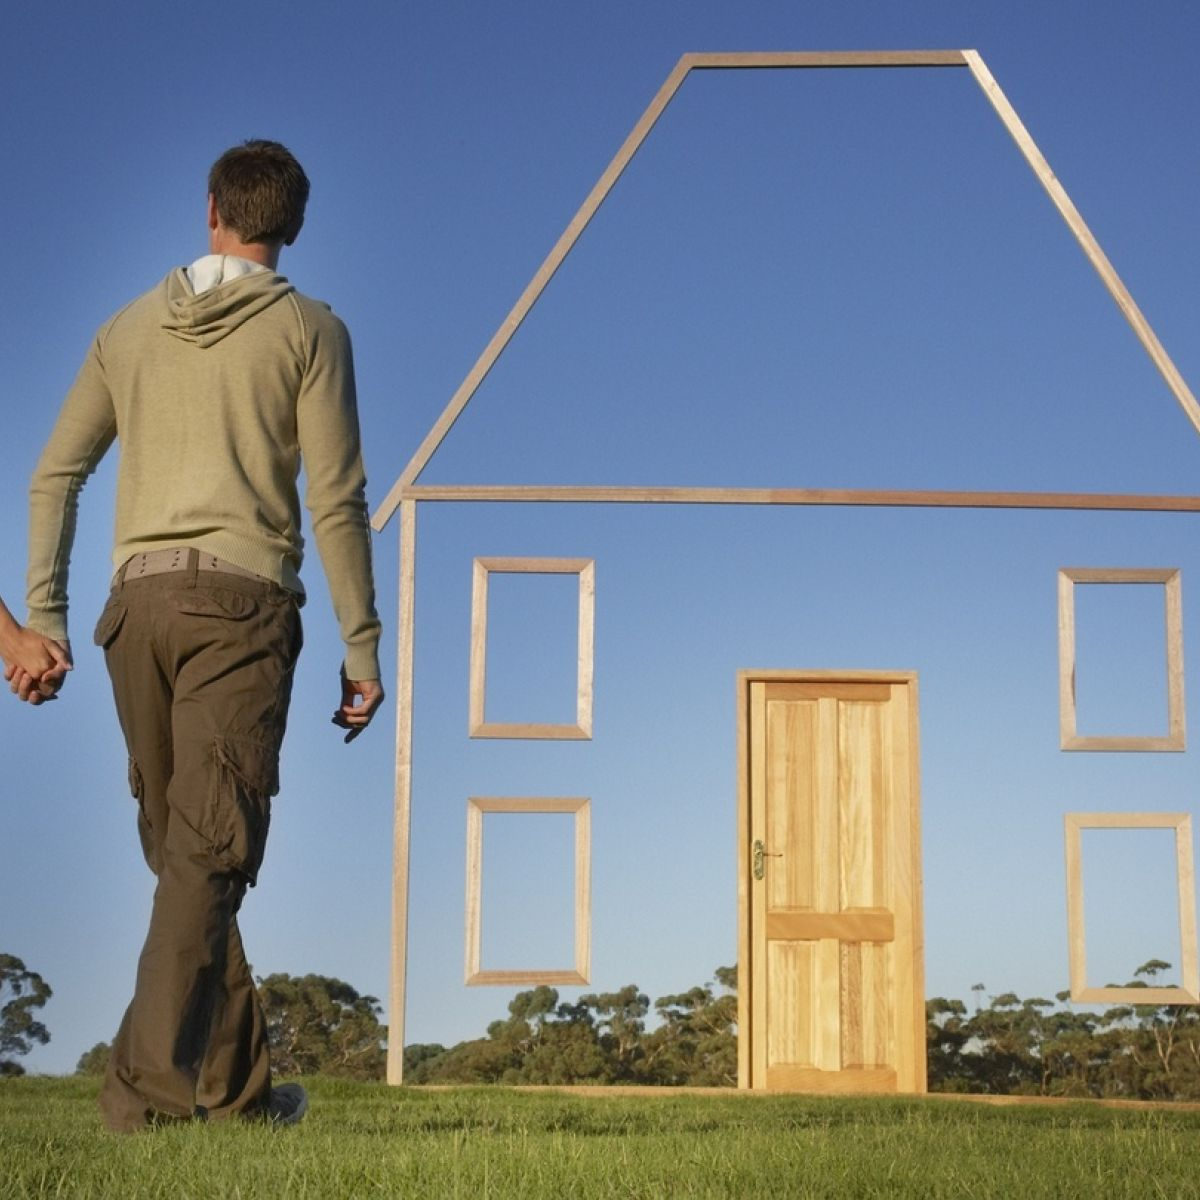 Can we move to Ireland and build a prefab home on a site?